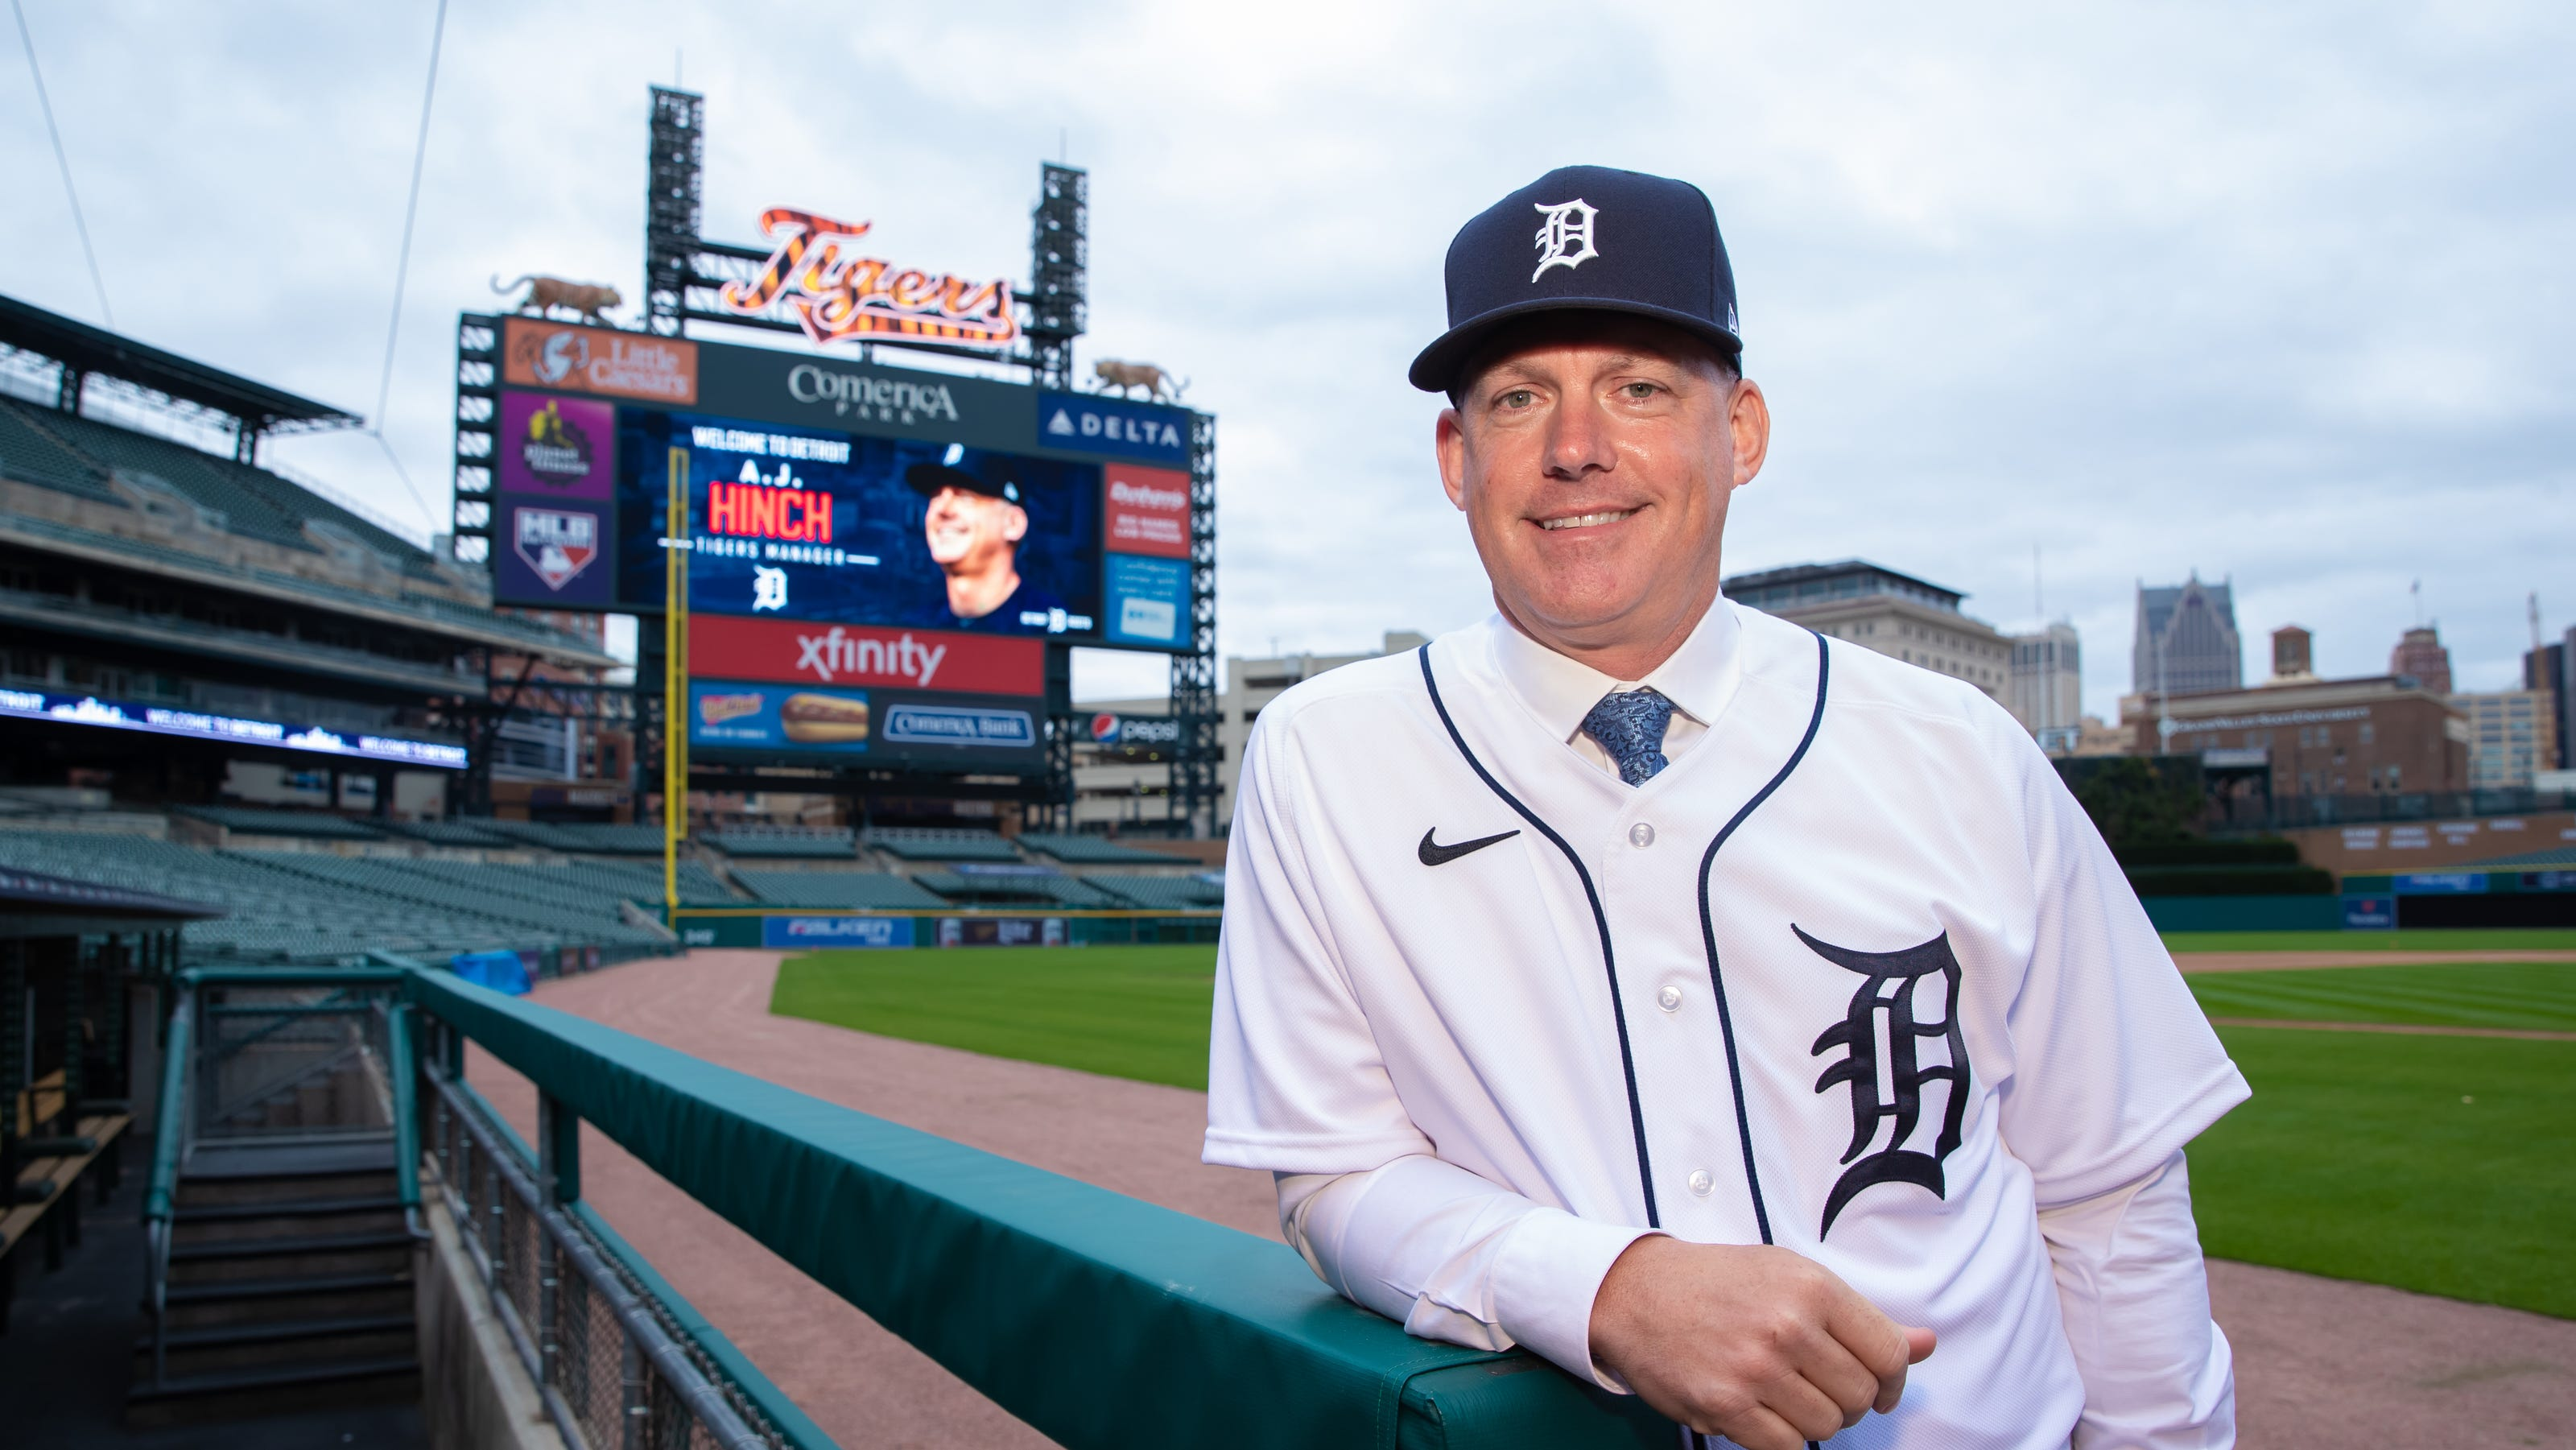 A.J. Hinch is Detroit Tigers' Scotty Bowman: Hired to win championship